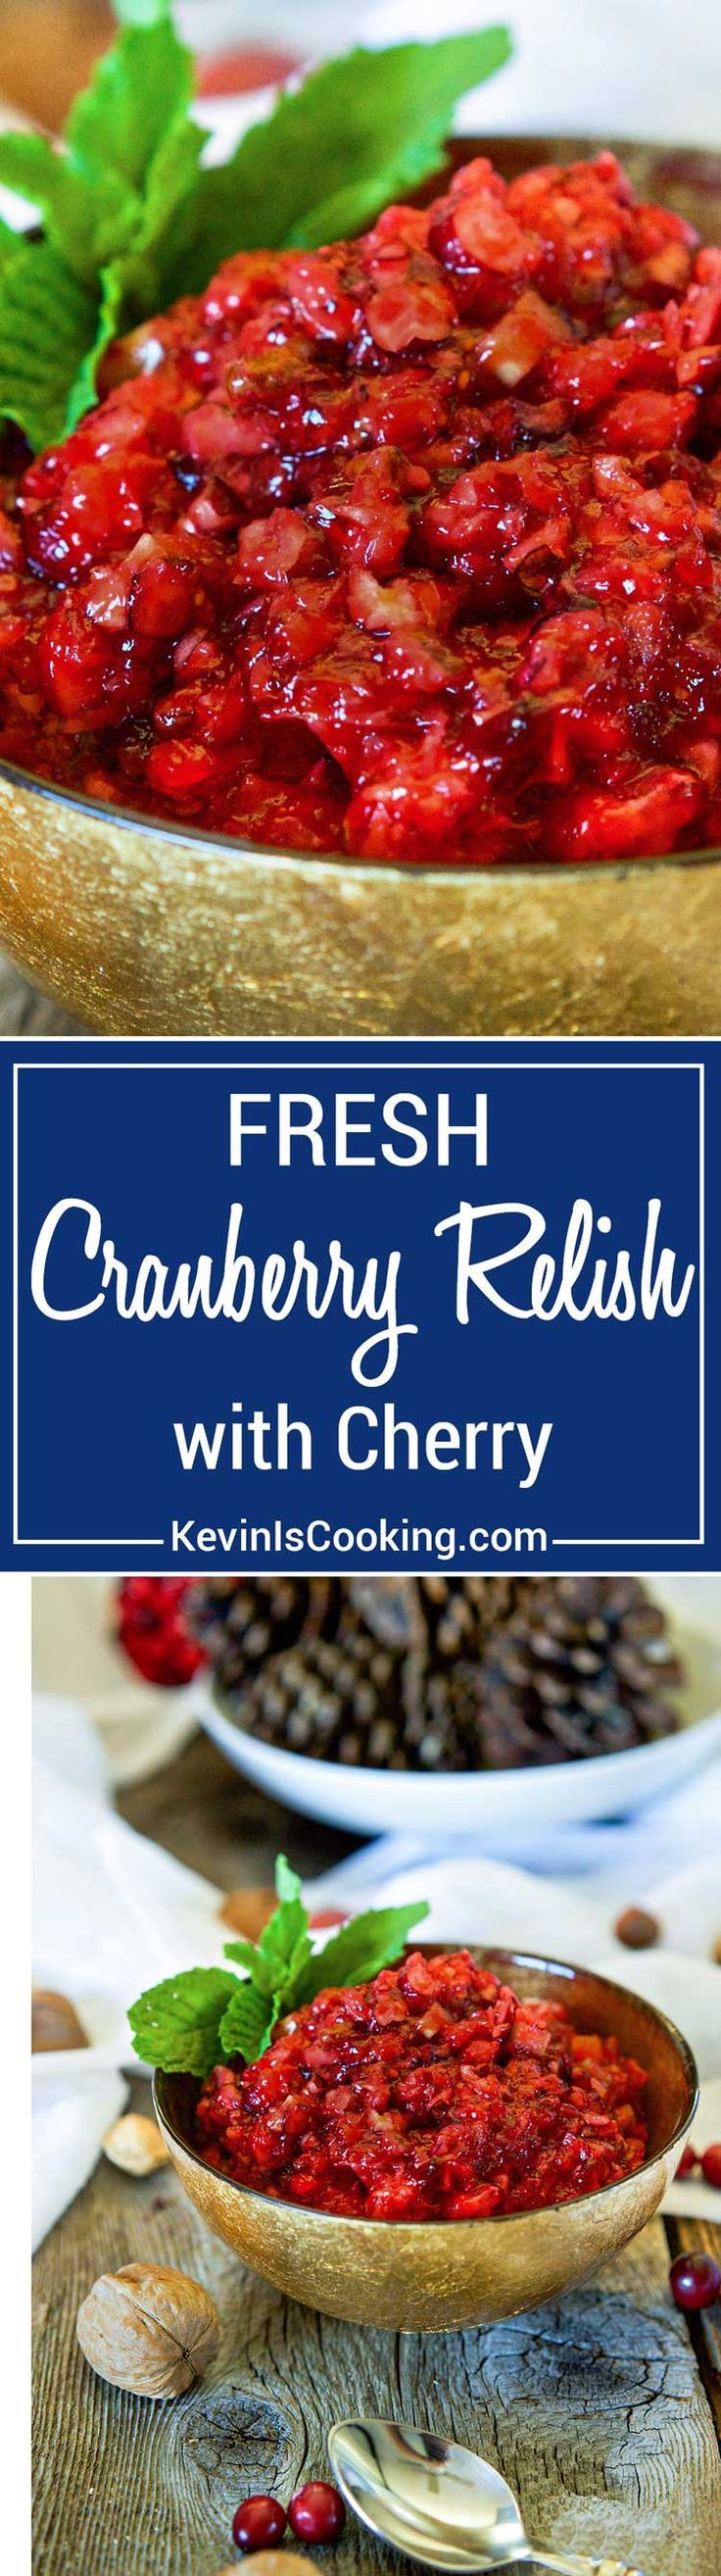 Fresh Cranberry Relish starts with fresh cranberries, orange, celery, pecans and walnuts. The secret flavor weapon is cherry jello. A great flavor combo! via @keviniscooking